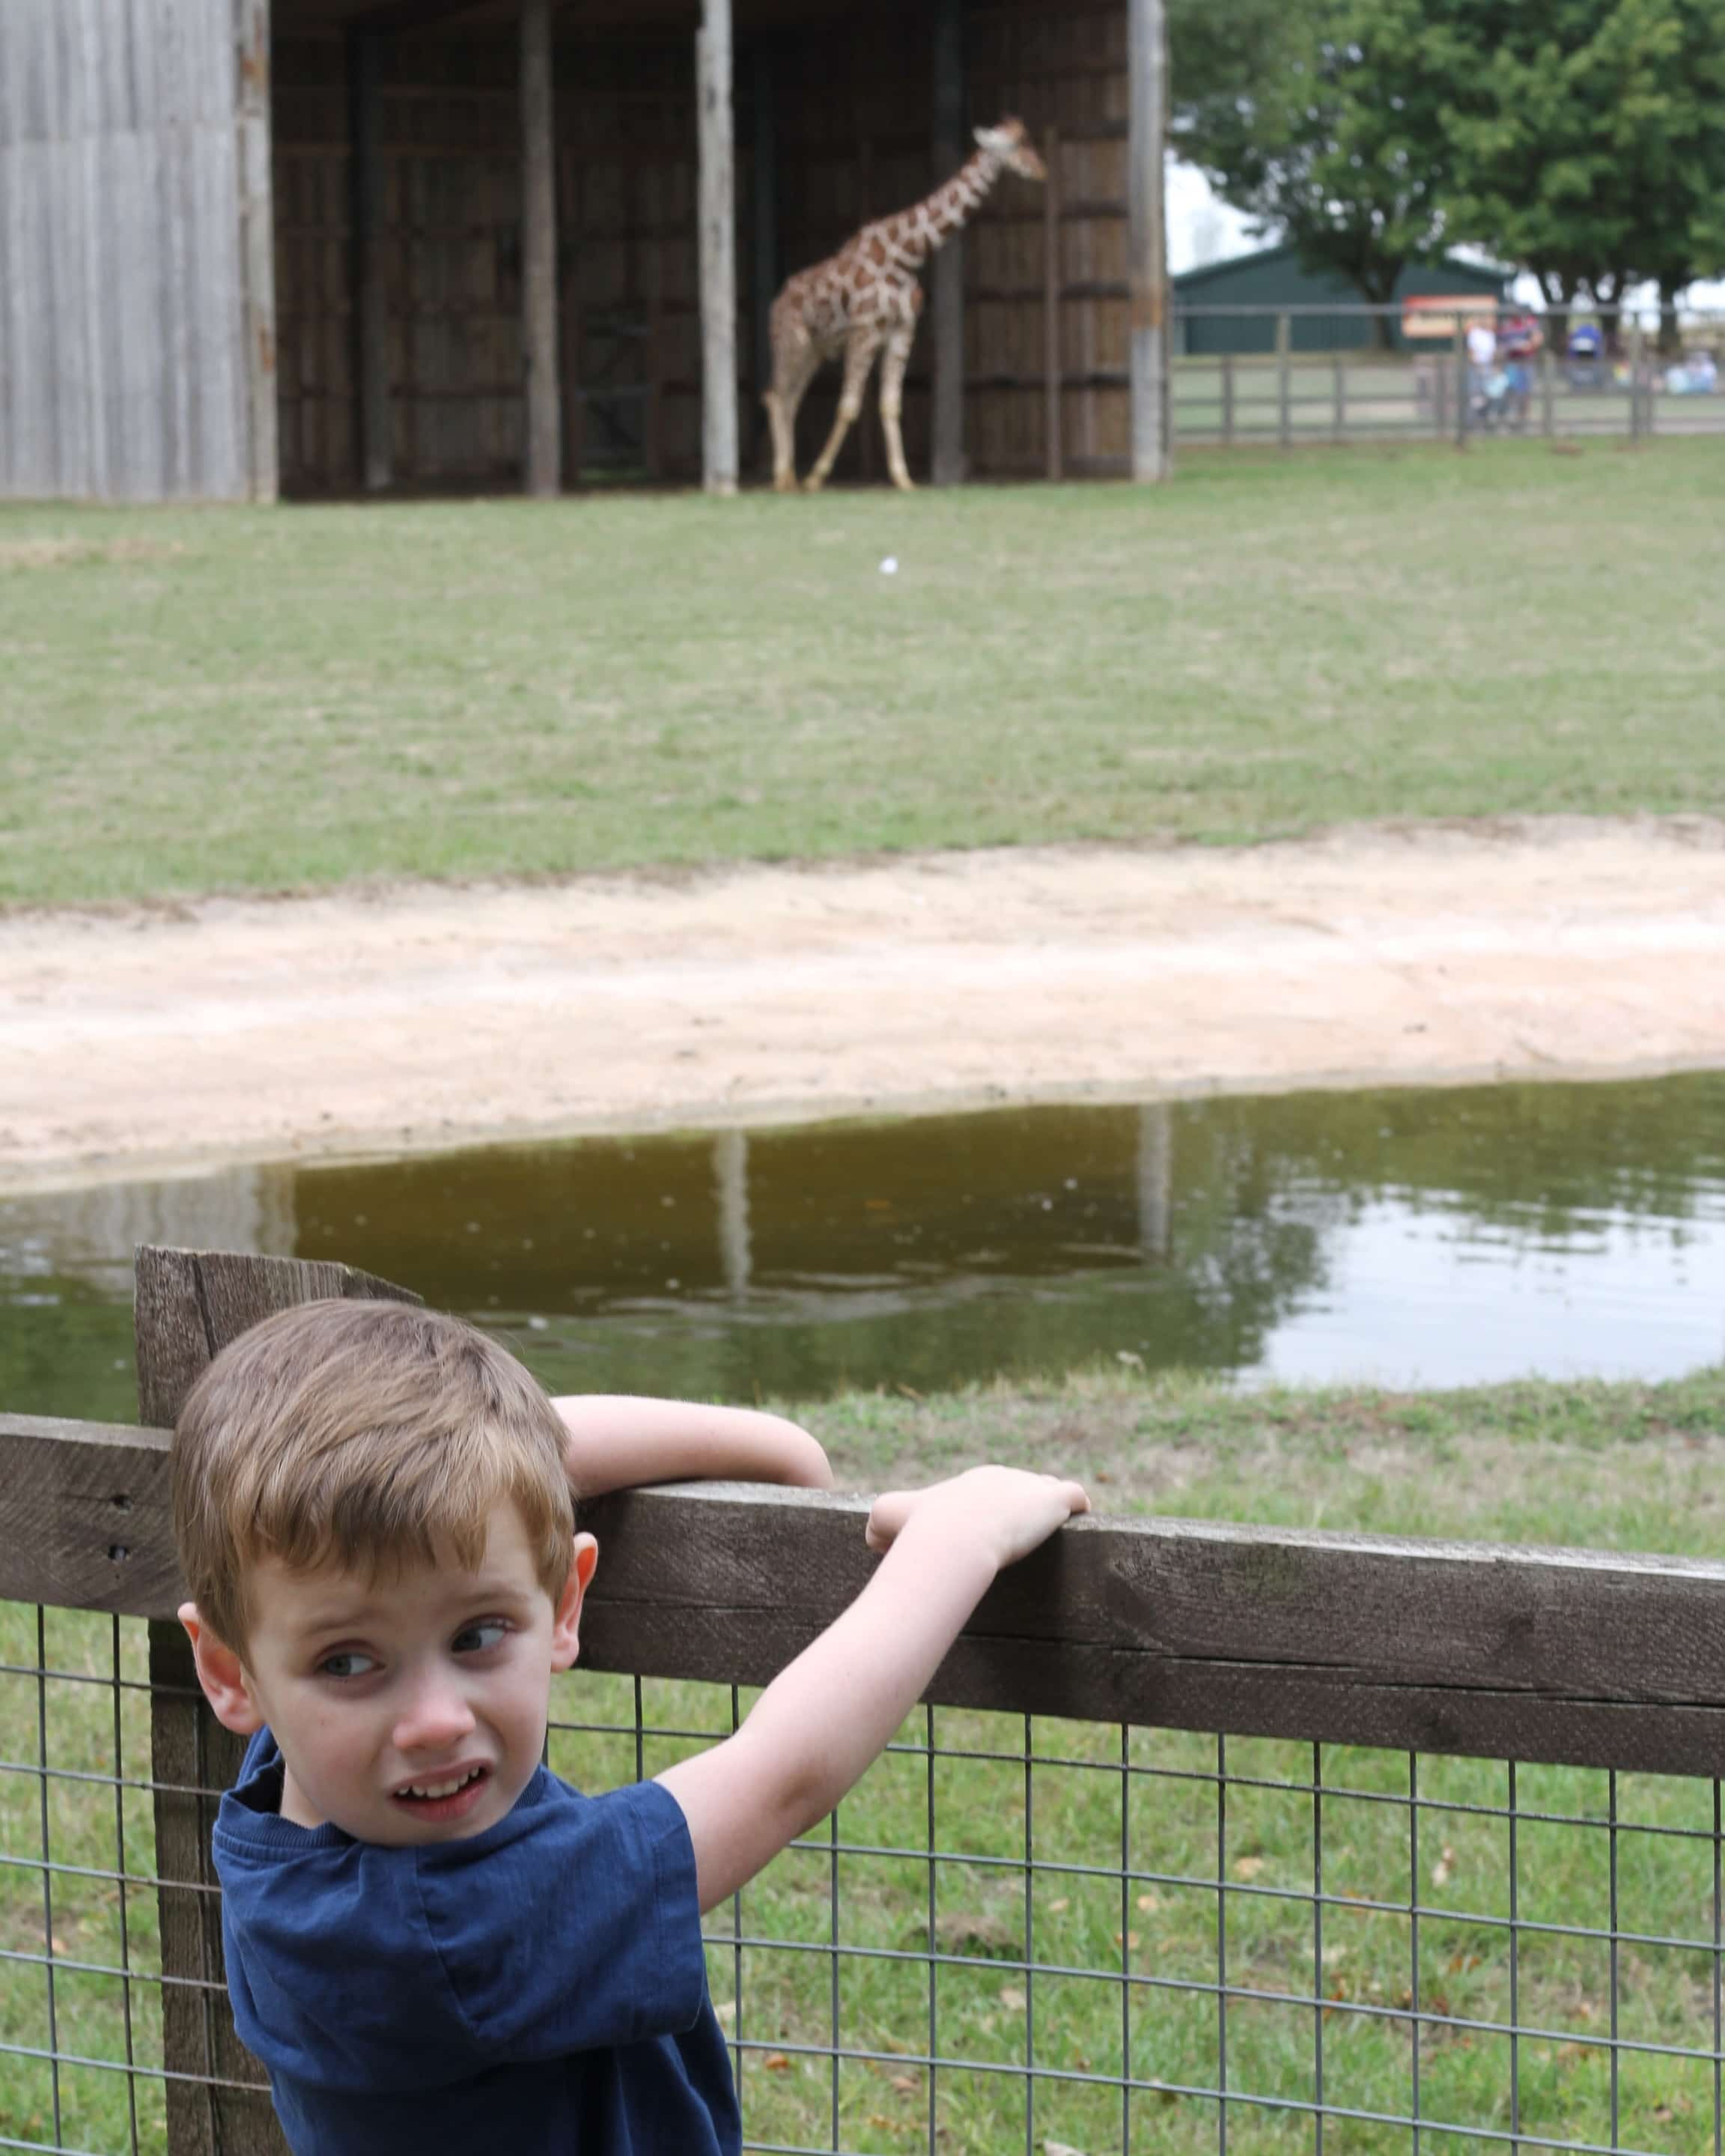 Biggest with giraffe